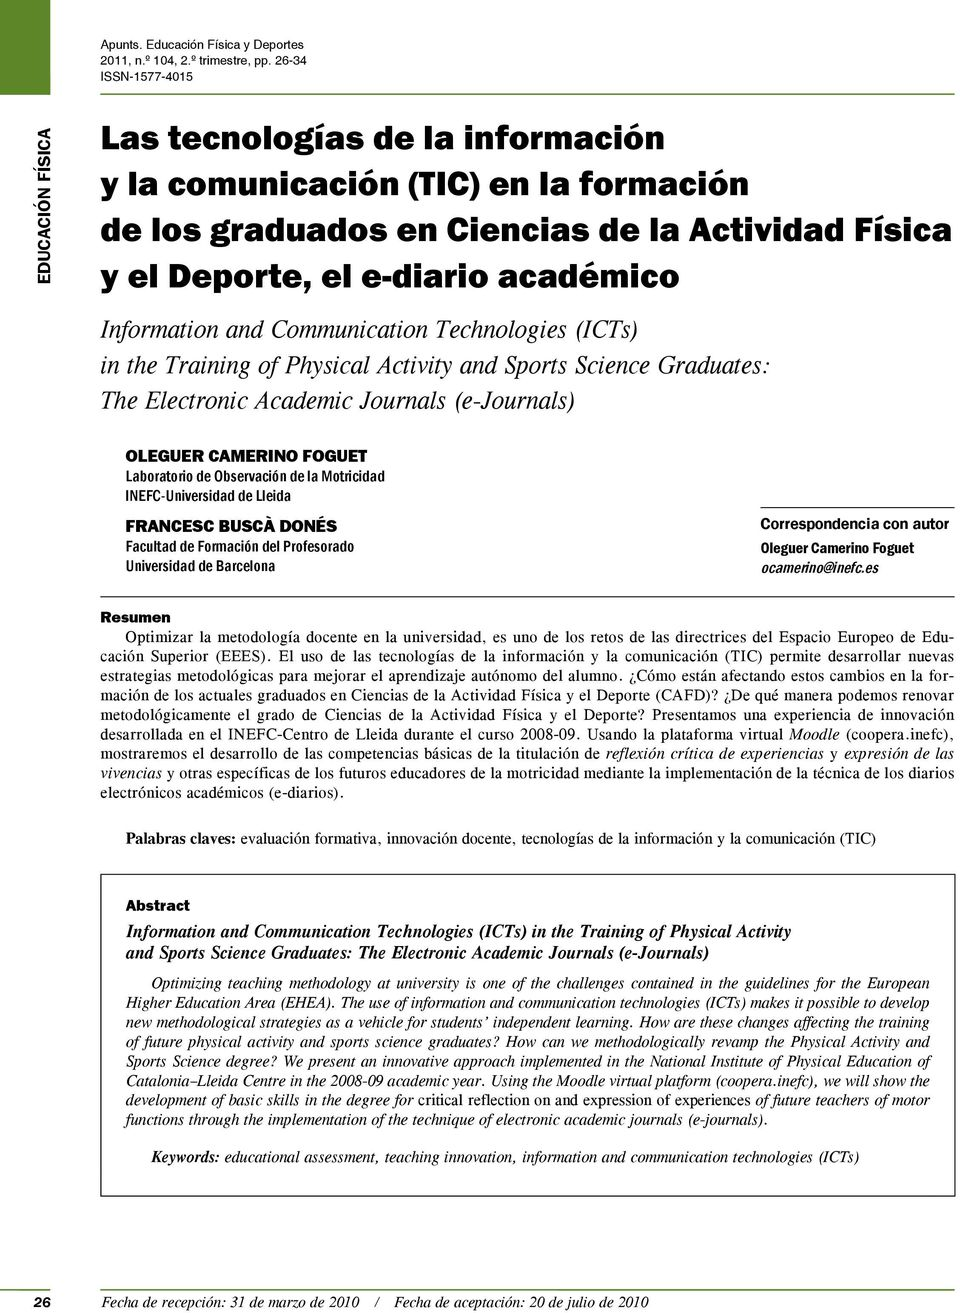 Technologies (ICTs) in the Training of Physical Activity and Sports Science Graduates: The Electronic Academic Journals (e-journals) Oleguer Camerino Foguet Laboratorio de Observación de la